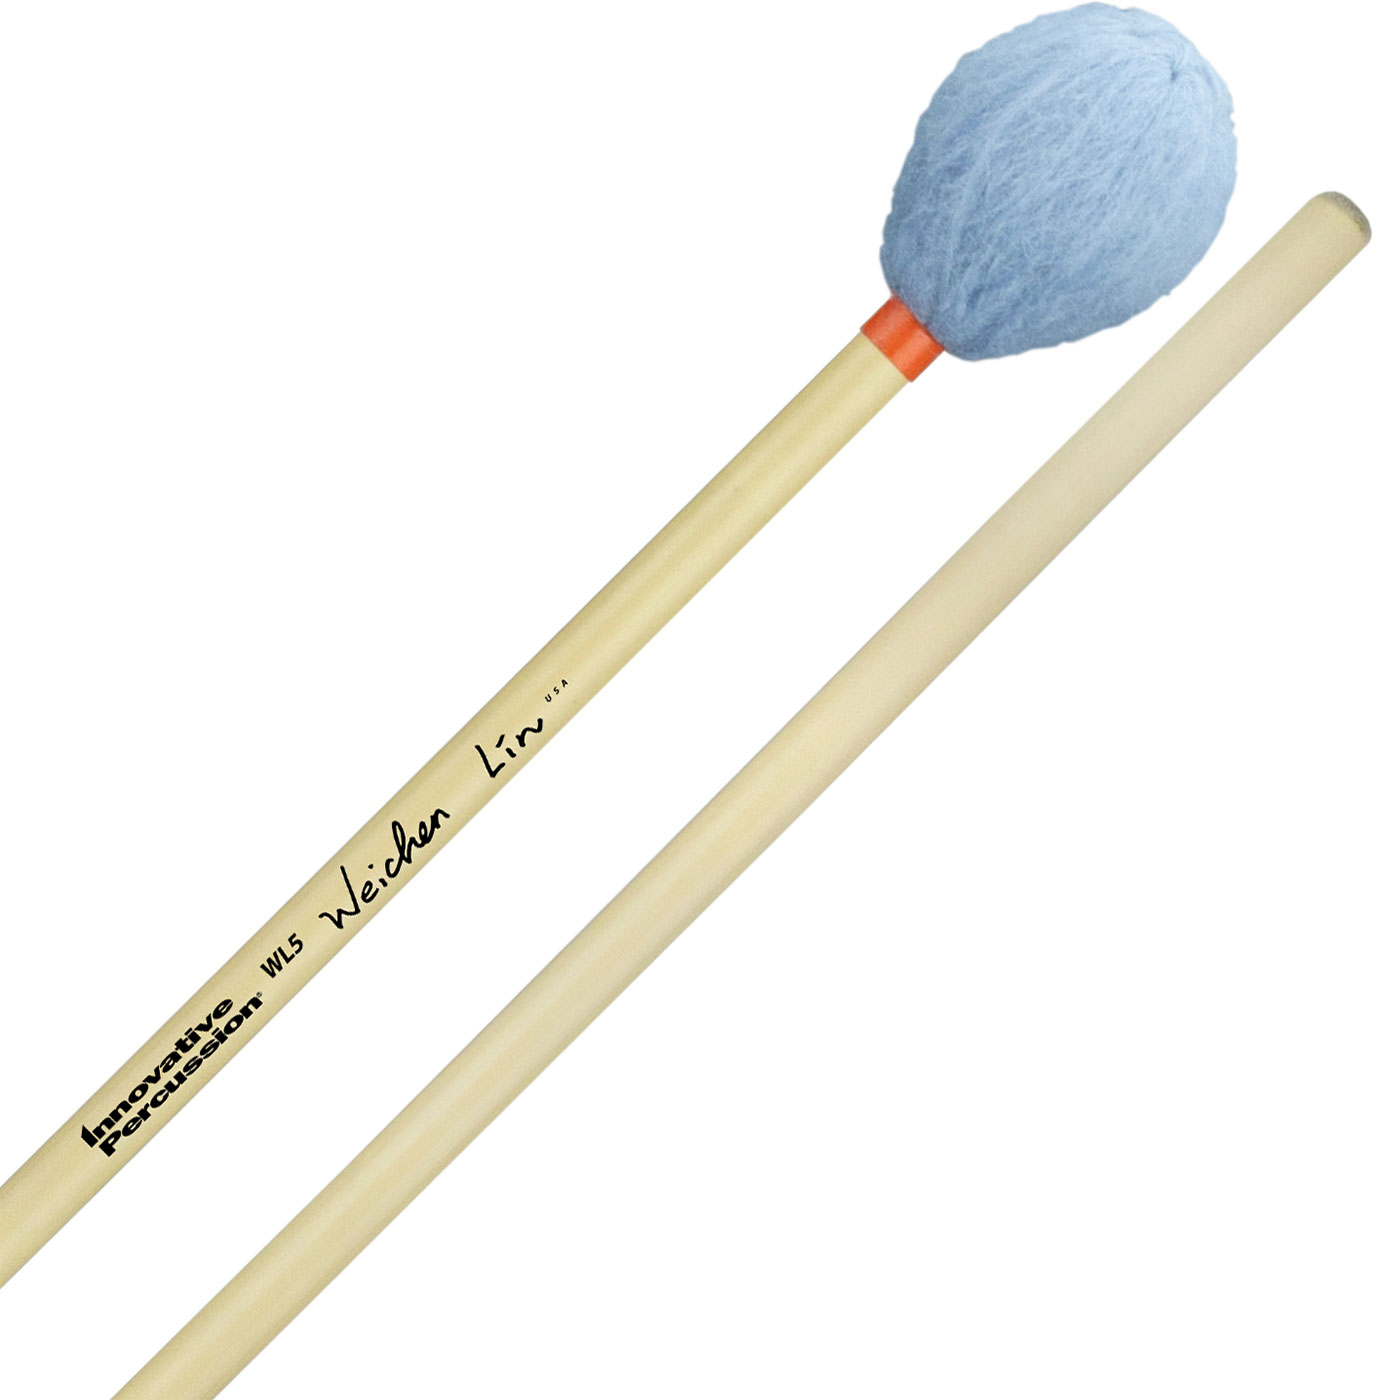 Innovative Percussion Wei-Chen Lin Signature Medium Hard Marimba Mallets with Rattan Handles